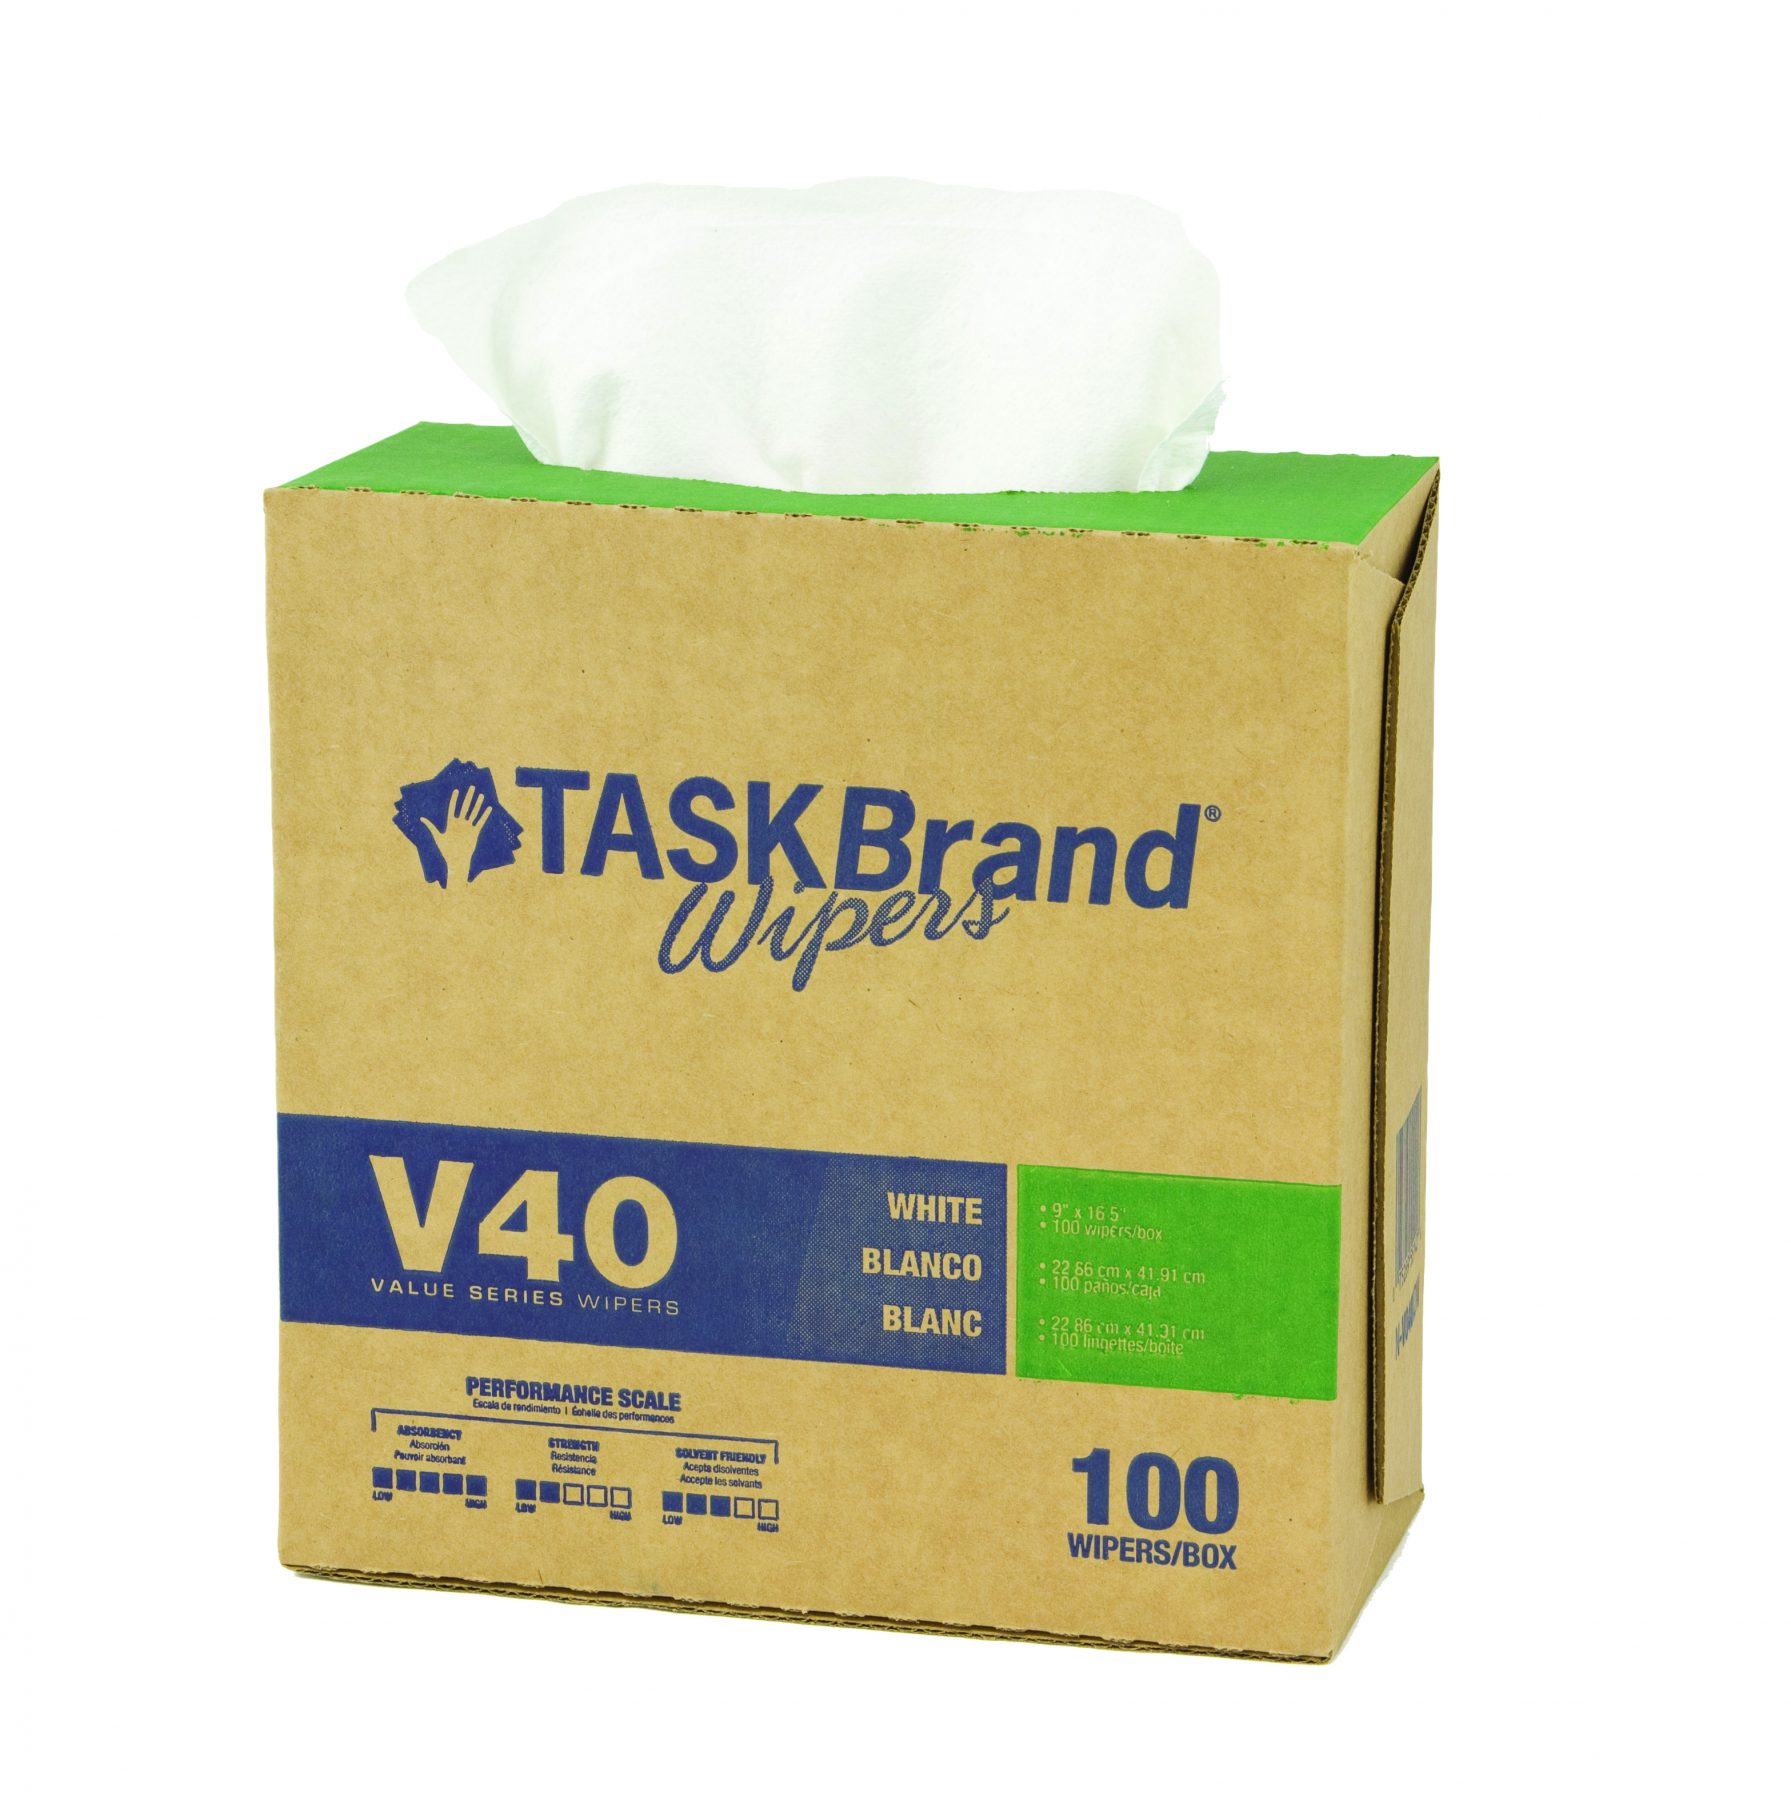 Taskbrand Wipers